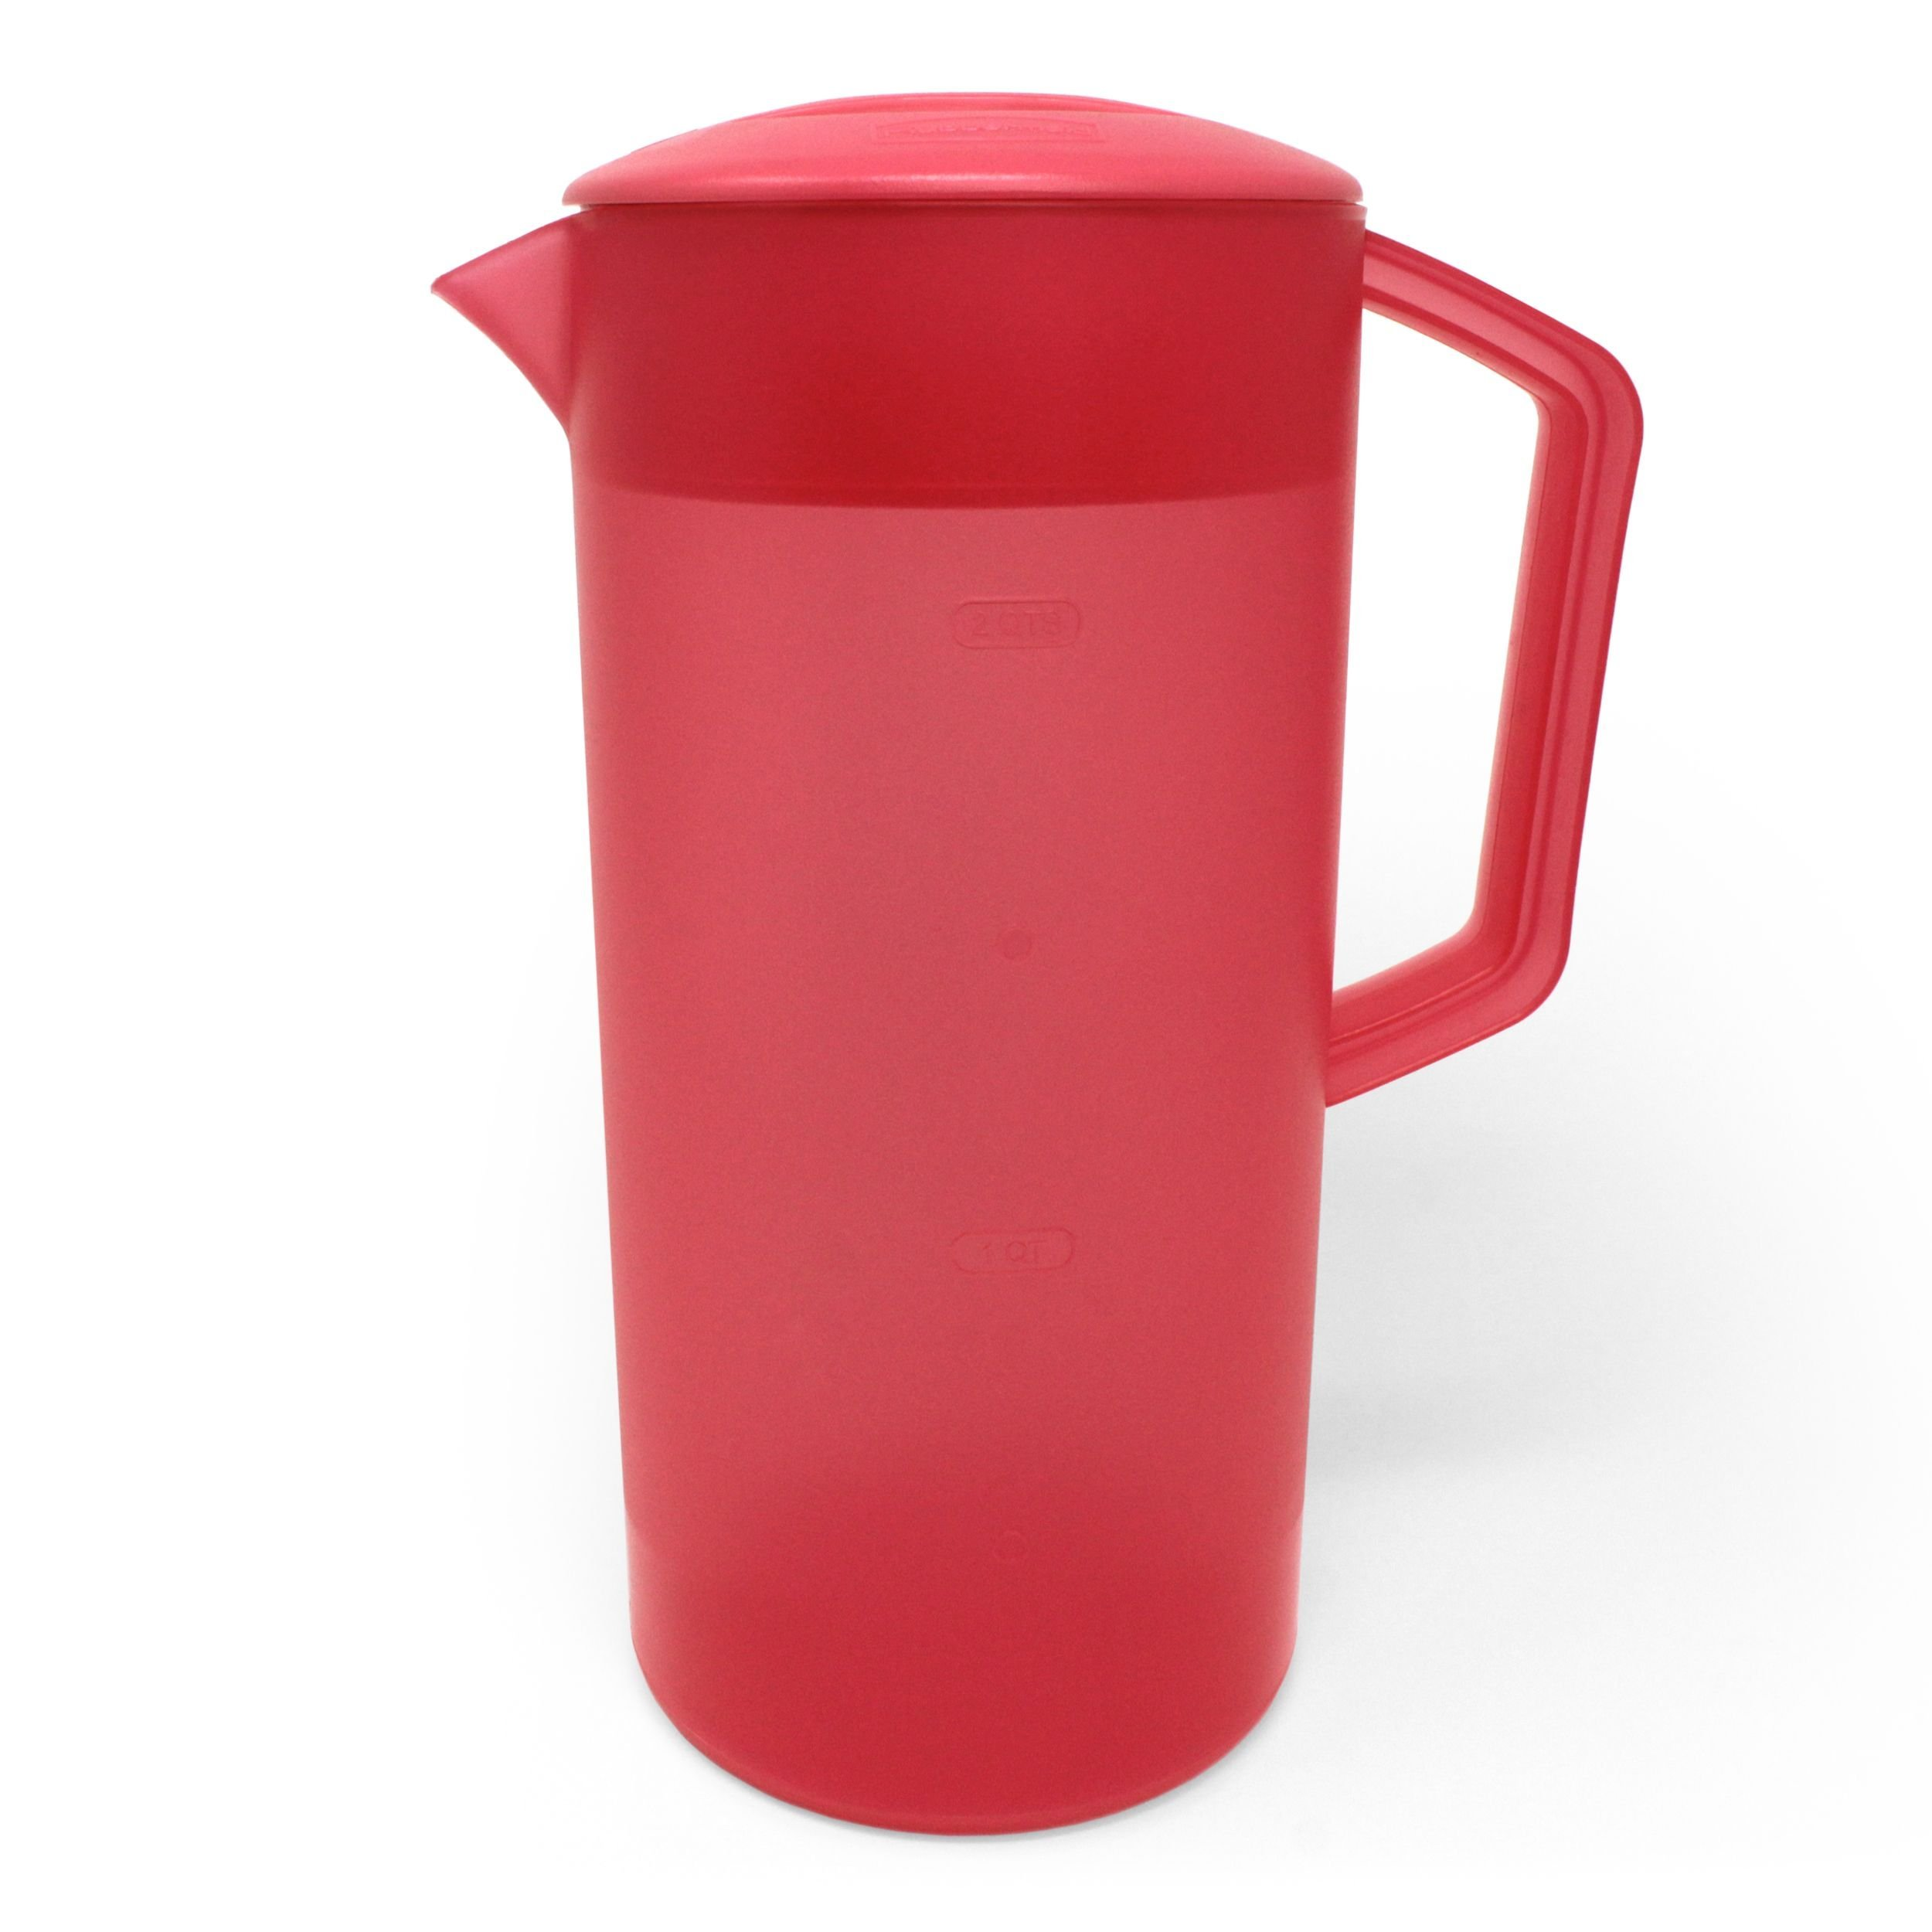 Rubbermaid Covered Pitcher 2 Quart/1.89 Liter - Coral